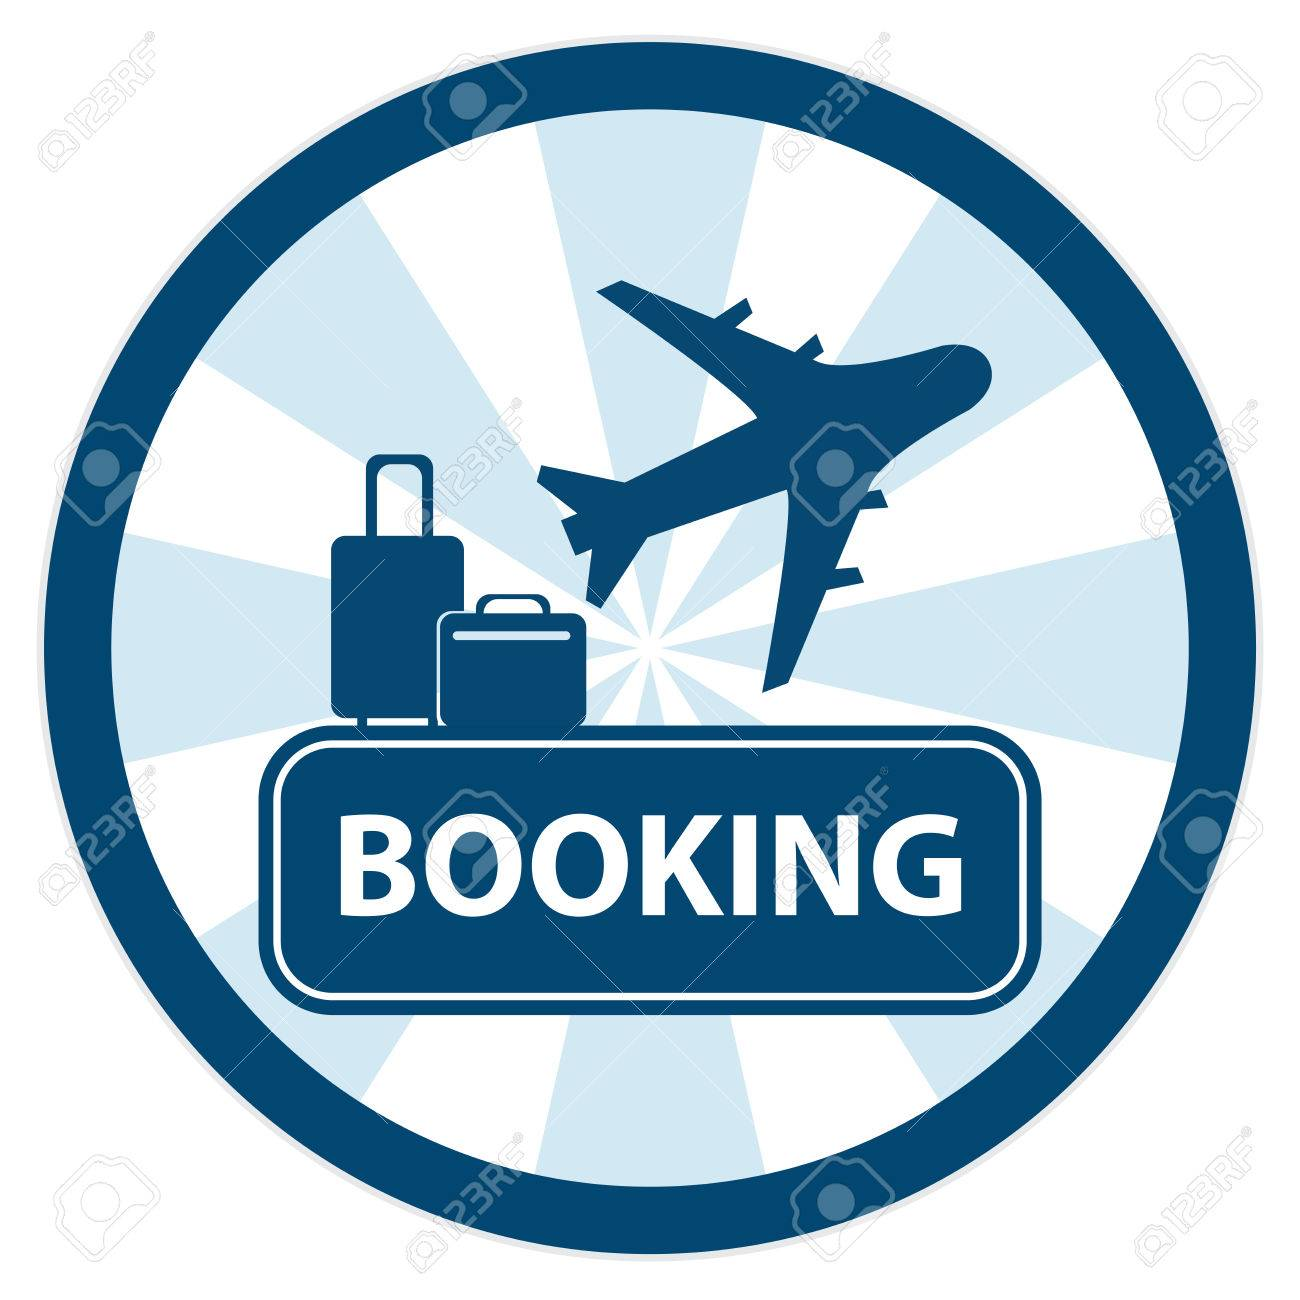 Blue Circle Vintage Style Flight Booking Sign Icon Sticker Or Label Isolated On White